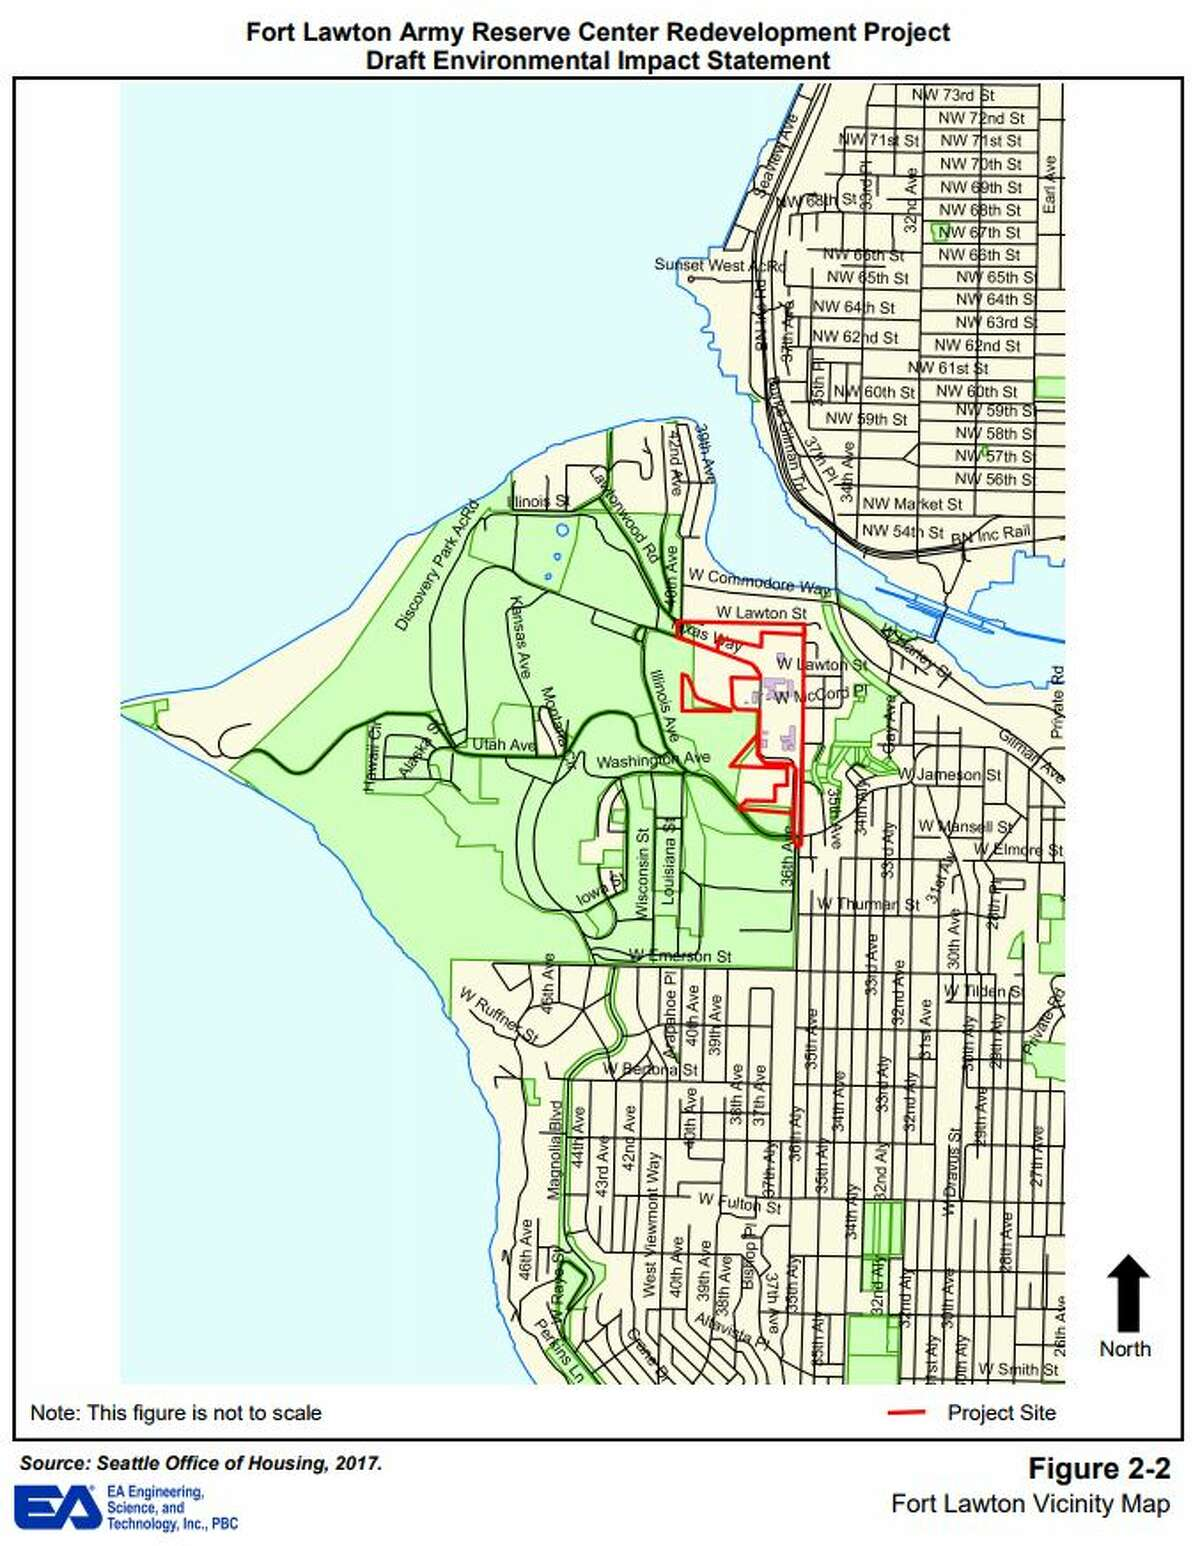 Maps and images from the city of Seattle's draft environmental impact statement for Fort Lawton redevelopment.